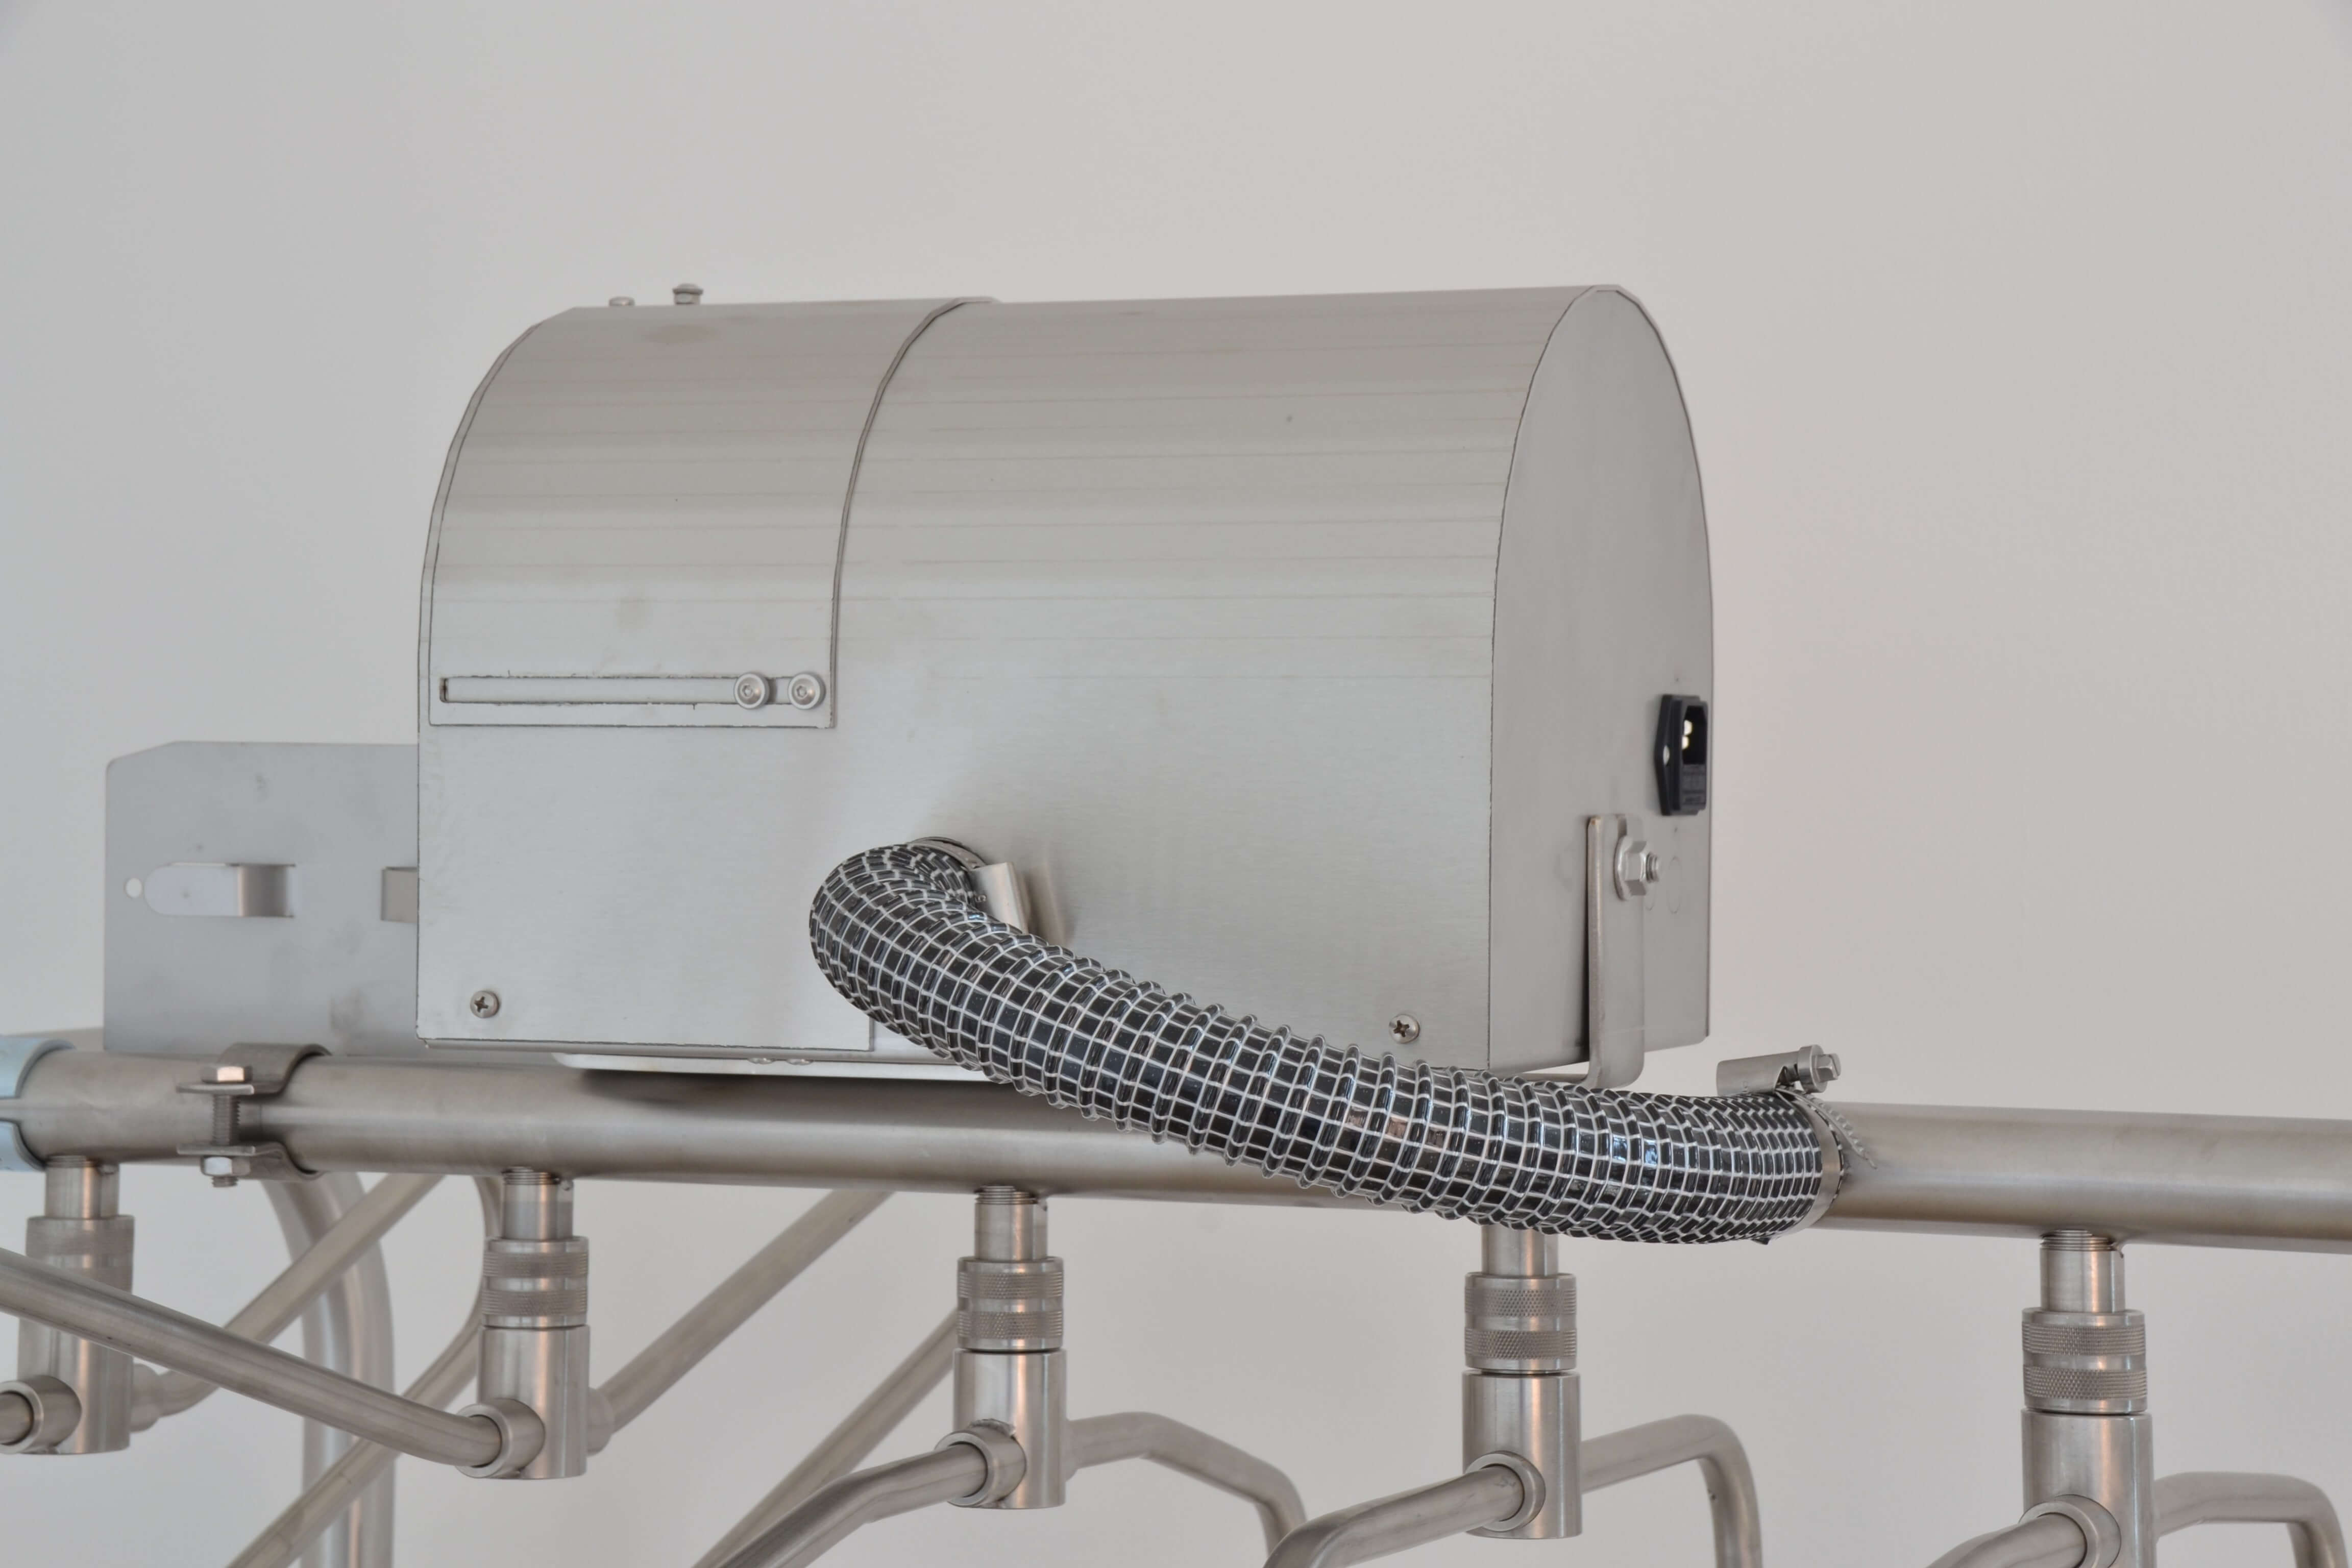 Pronomar professional drying equipment with warm-air blowers